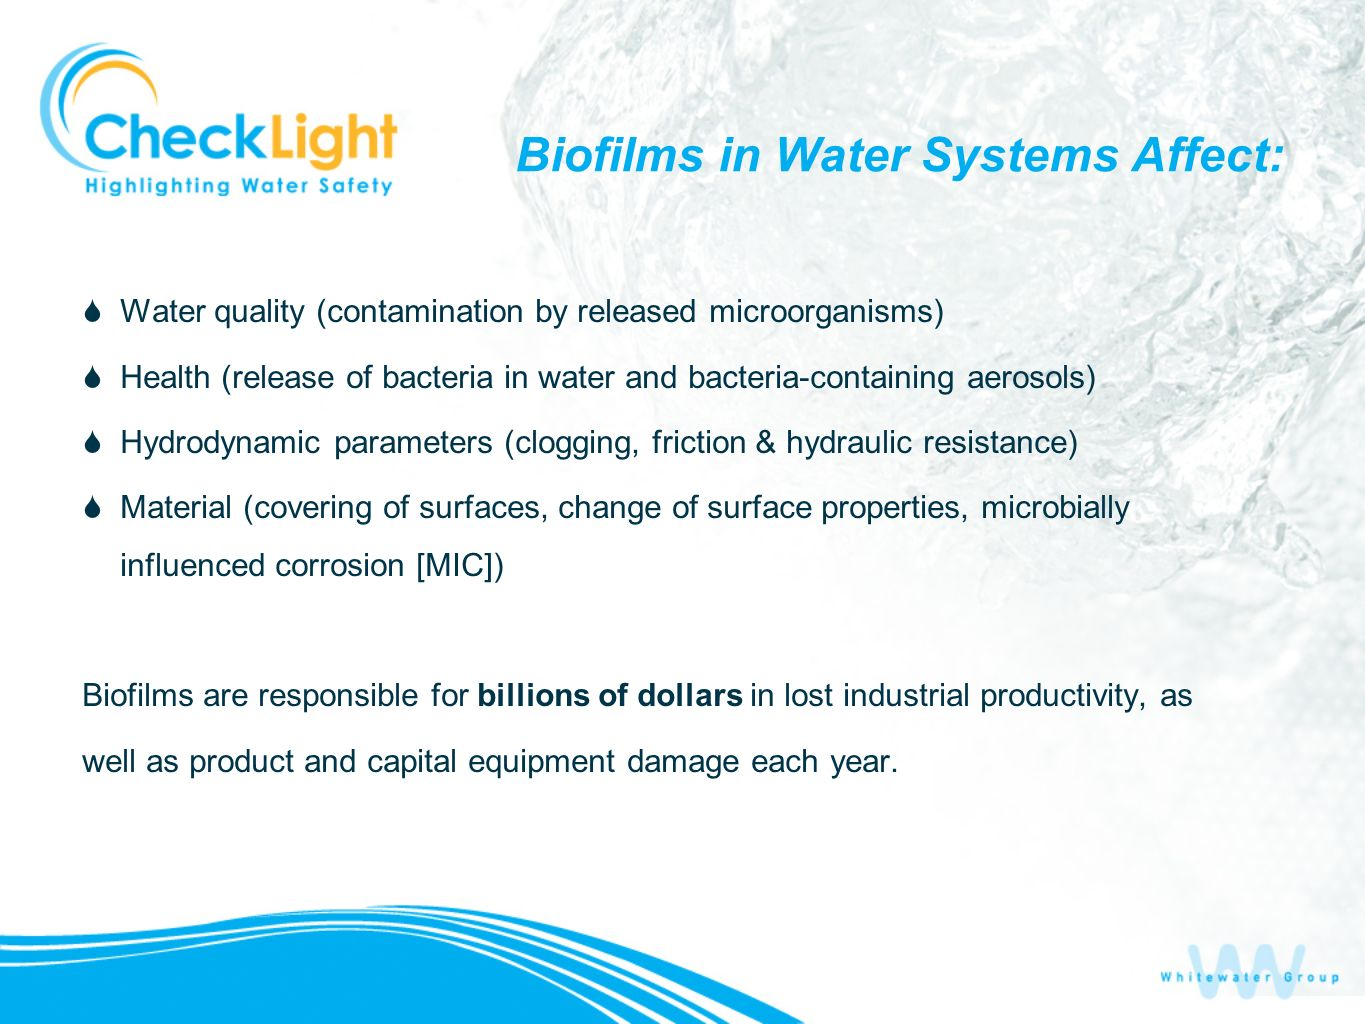 Biofilms in Water Systems Affect: